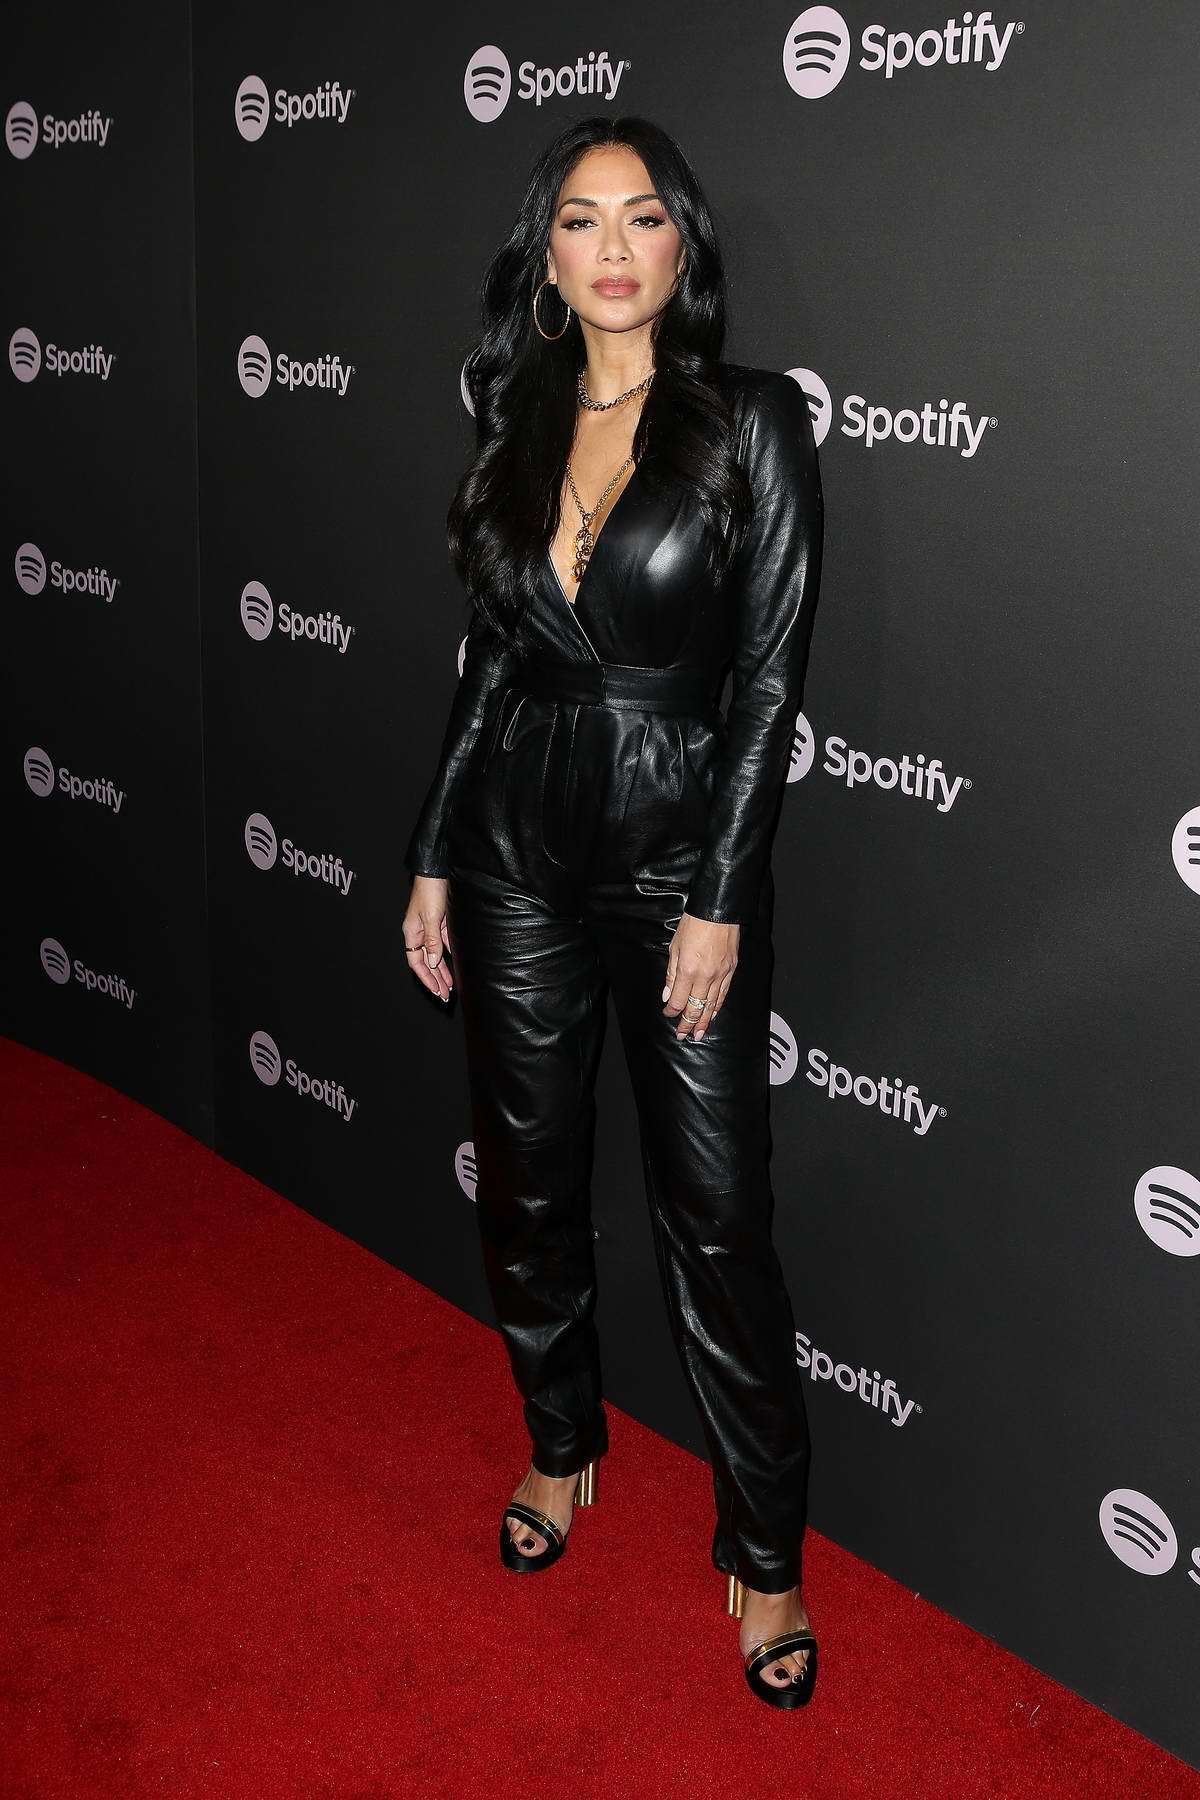 Nicole Scherzinger attends the Spotify 'Best New Artist 2019' event at Hammer Museum in Los Angeles